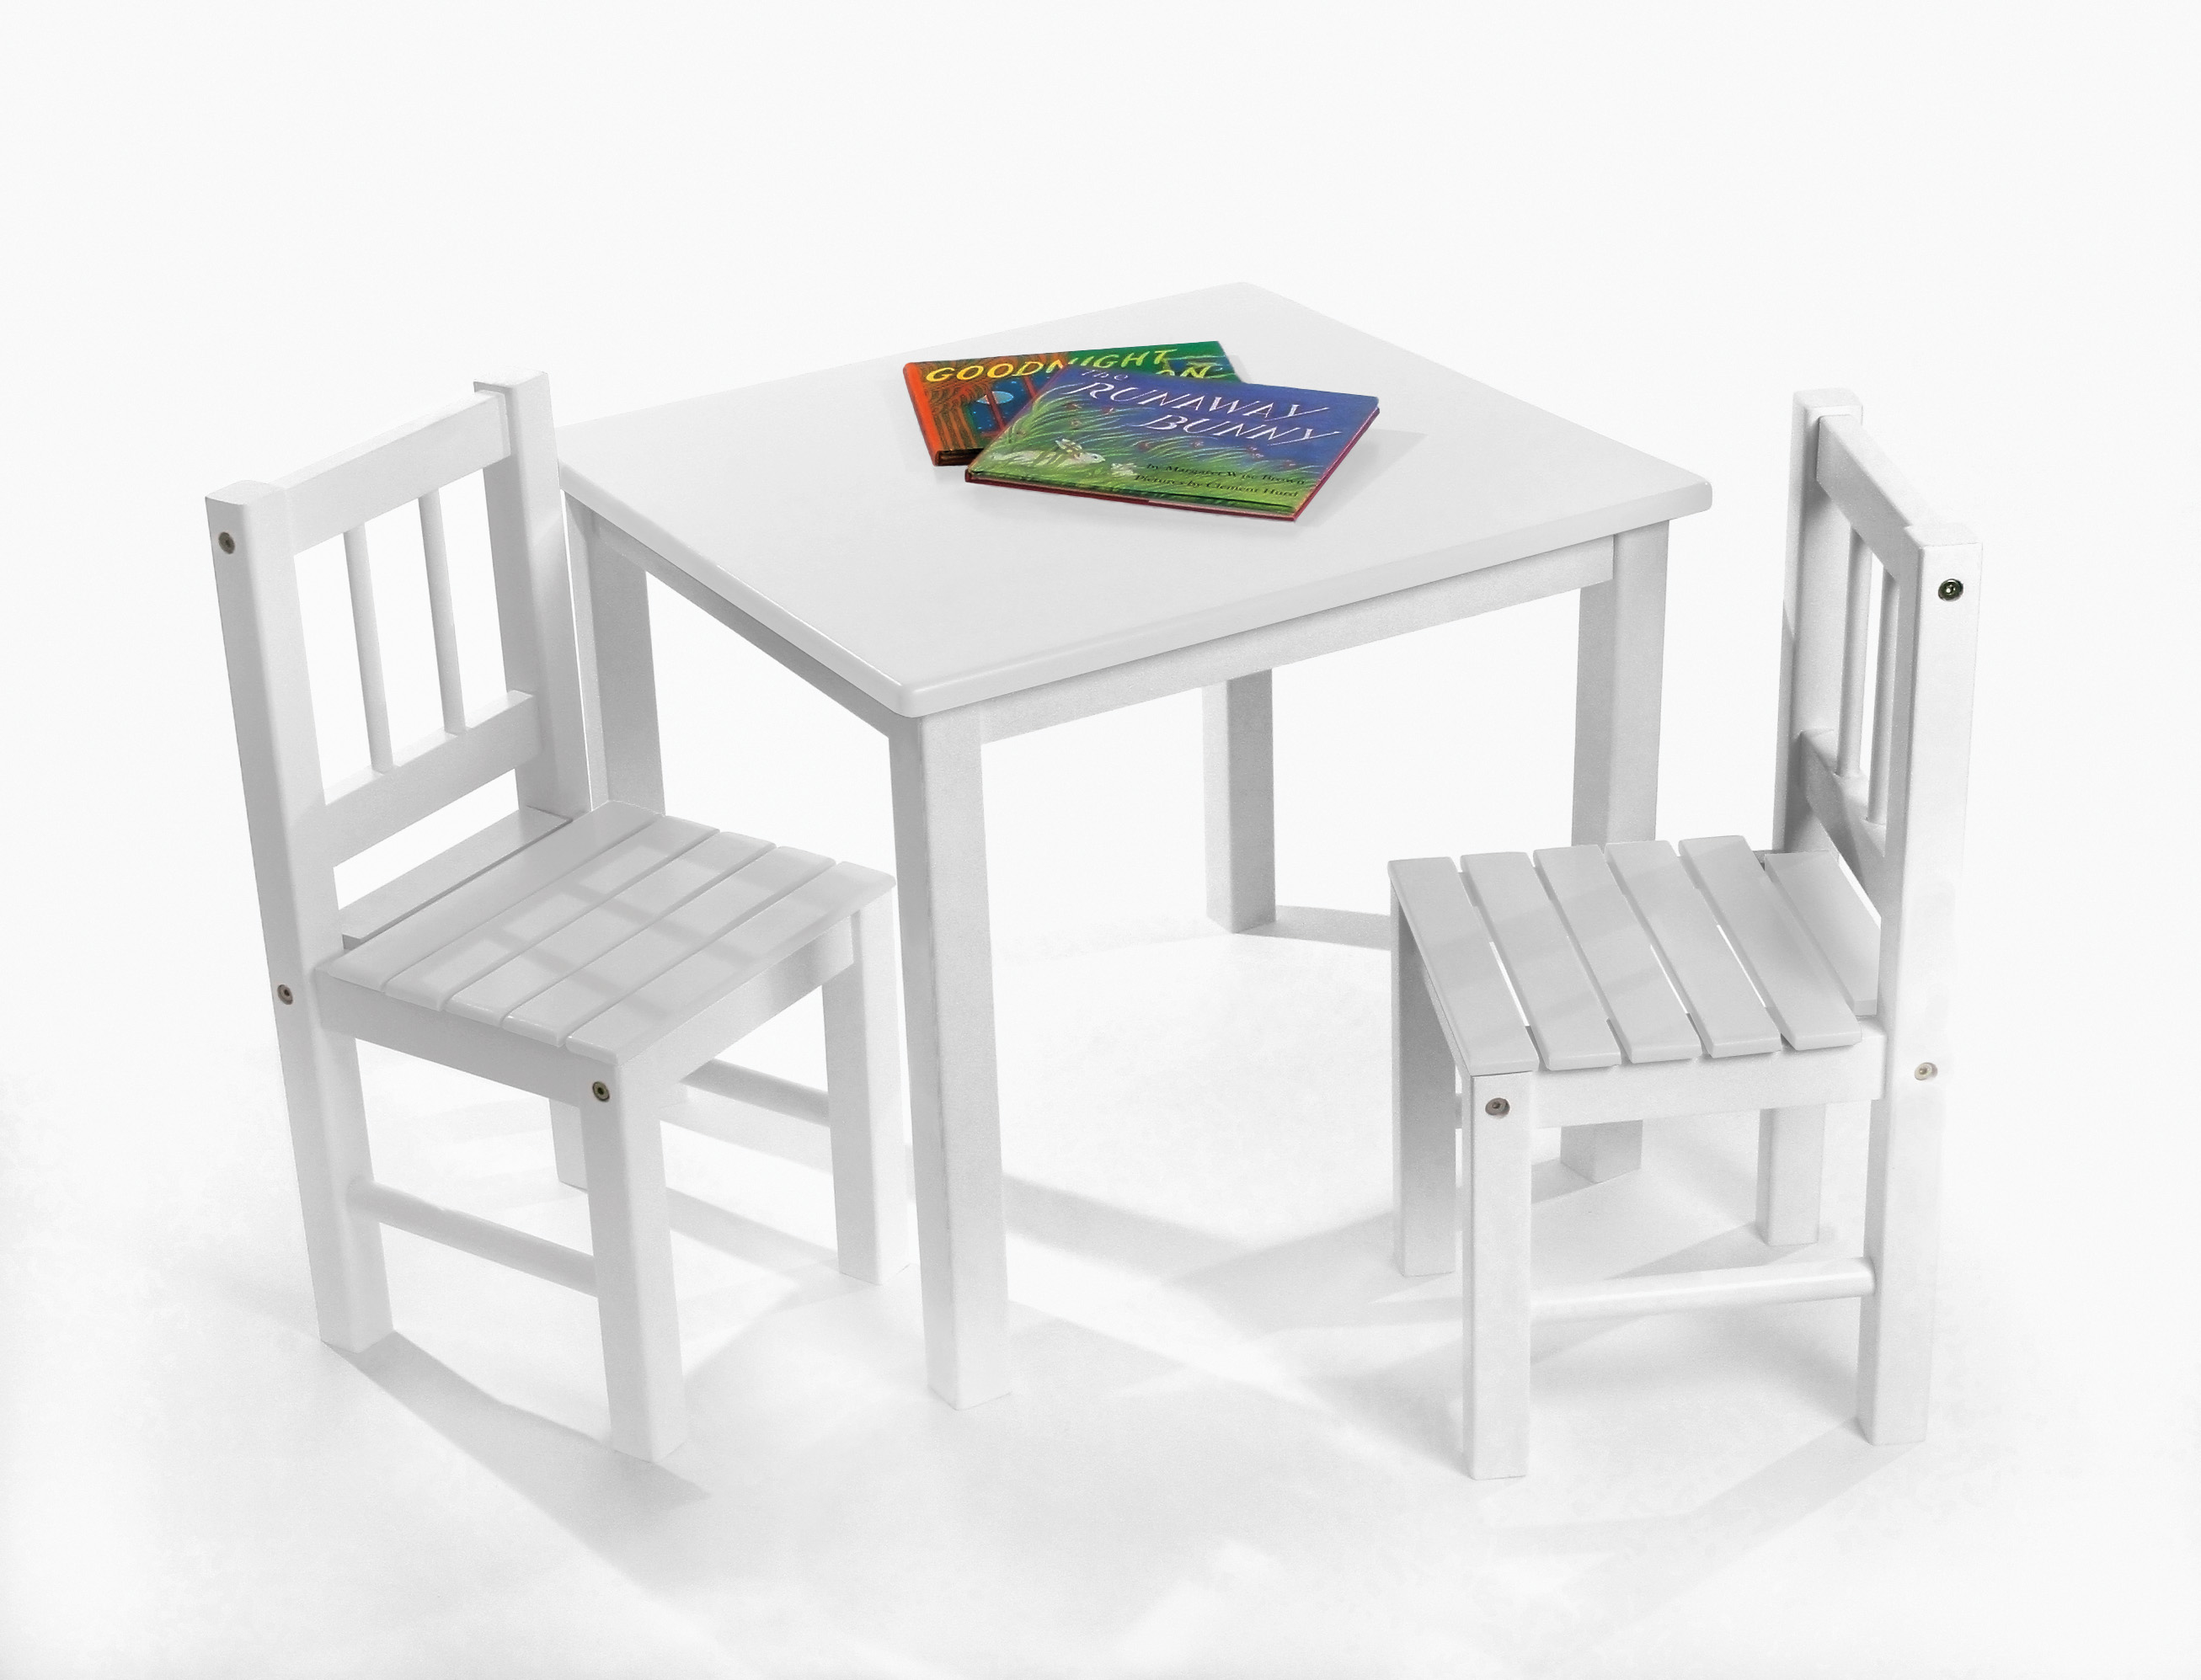 3 piece table and chair set best bean bag chairs reddit child s white lipper international